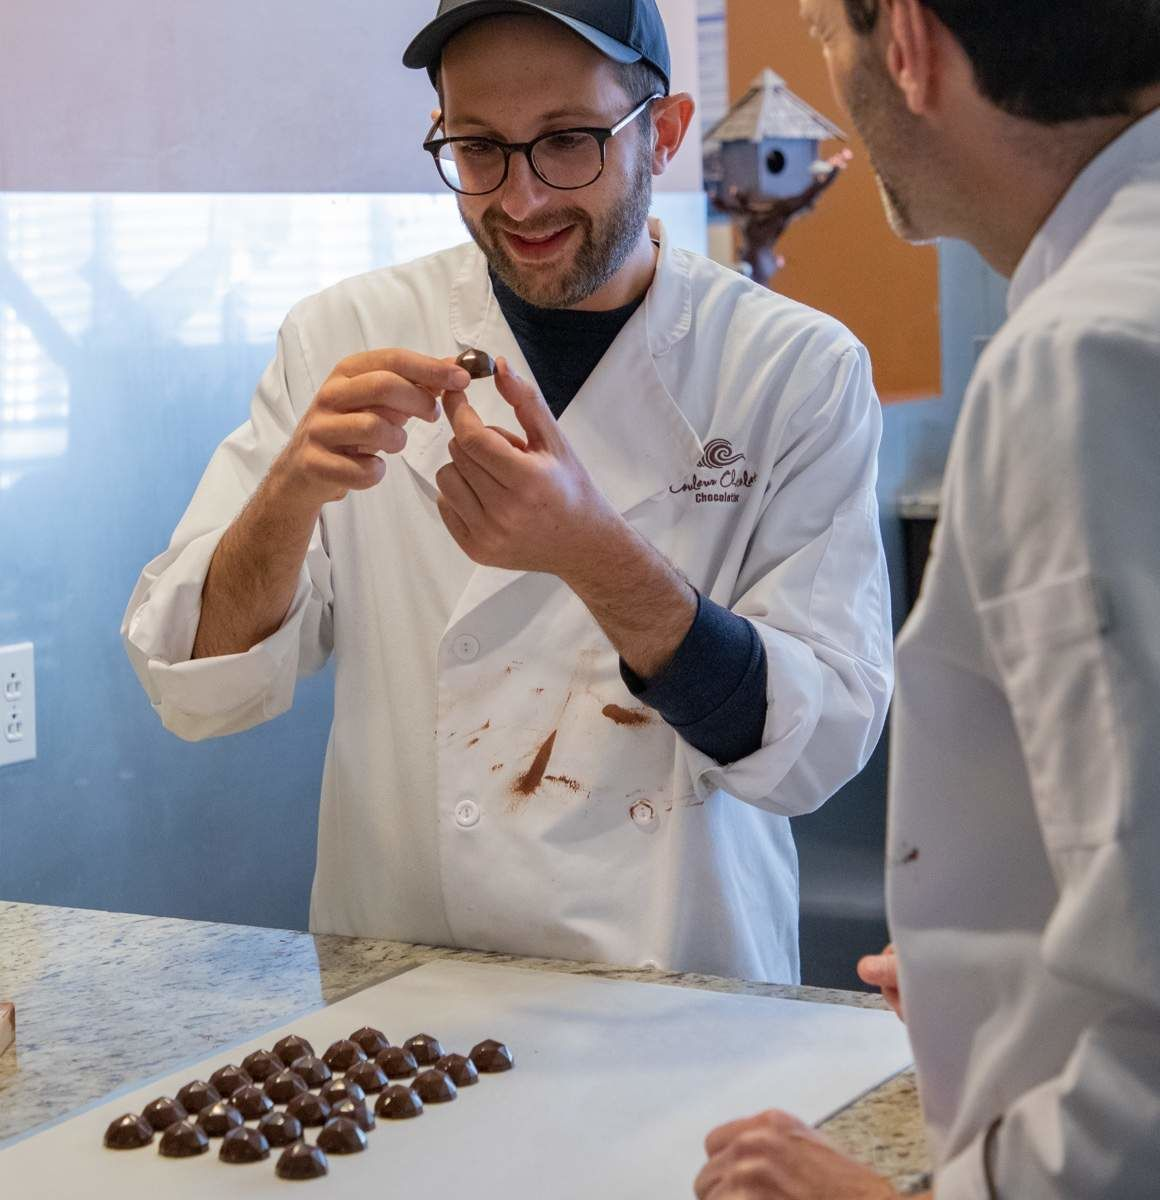 Michael and Carl Pelletier of Couleur Chocolat making chocolate